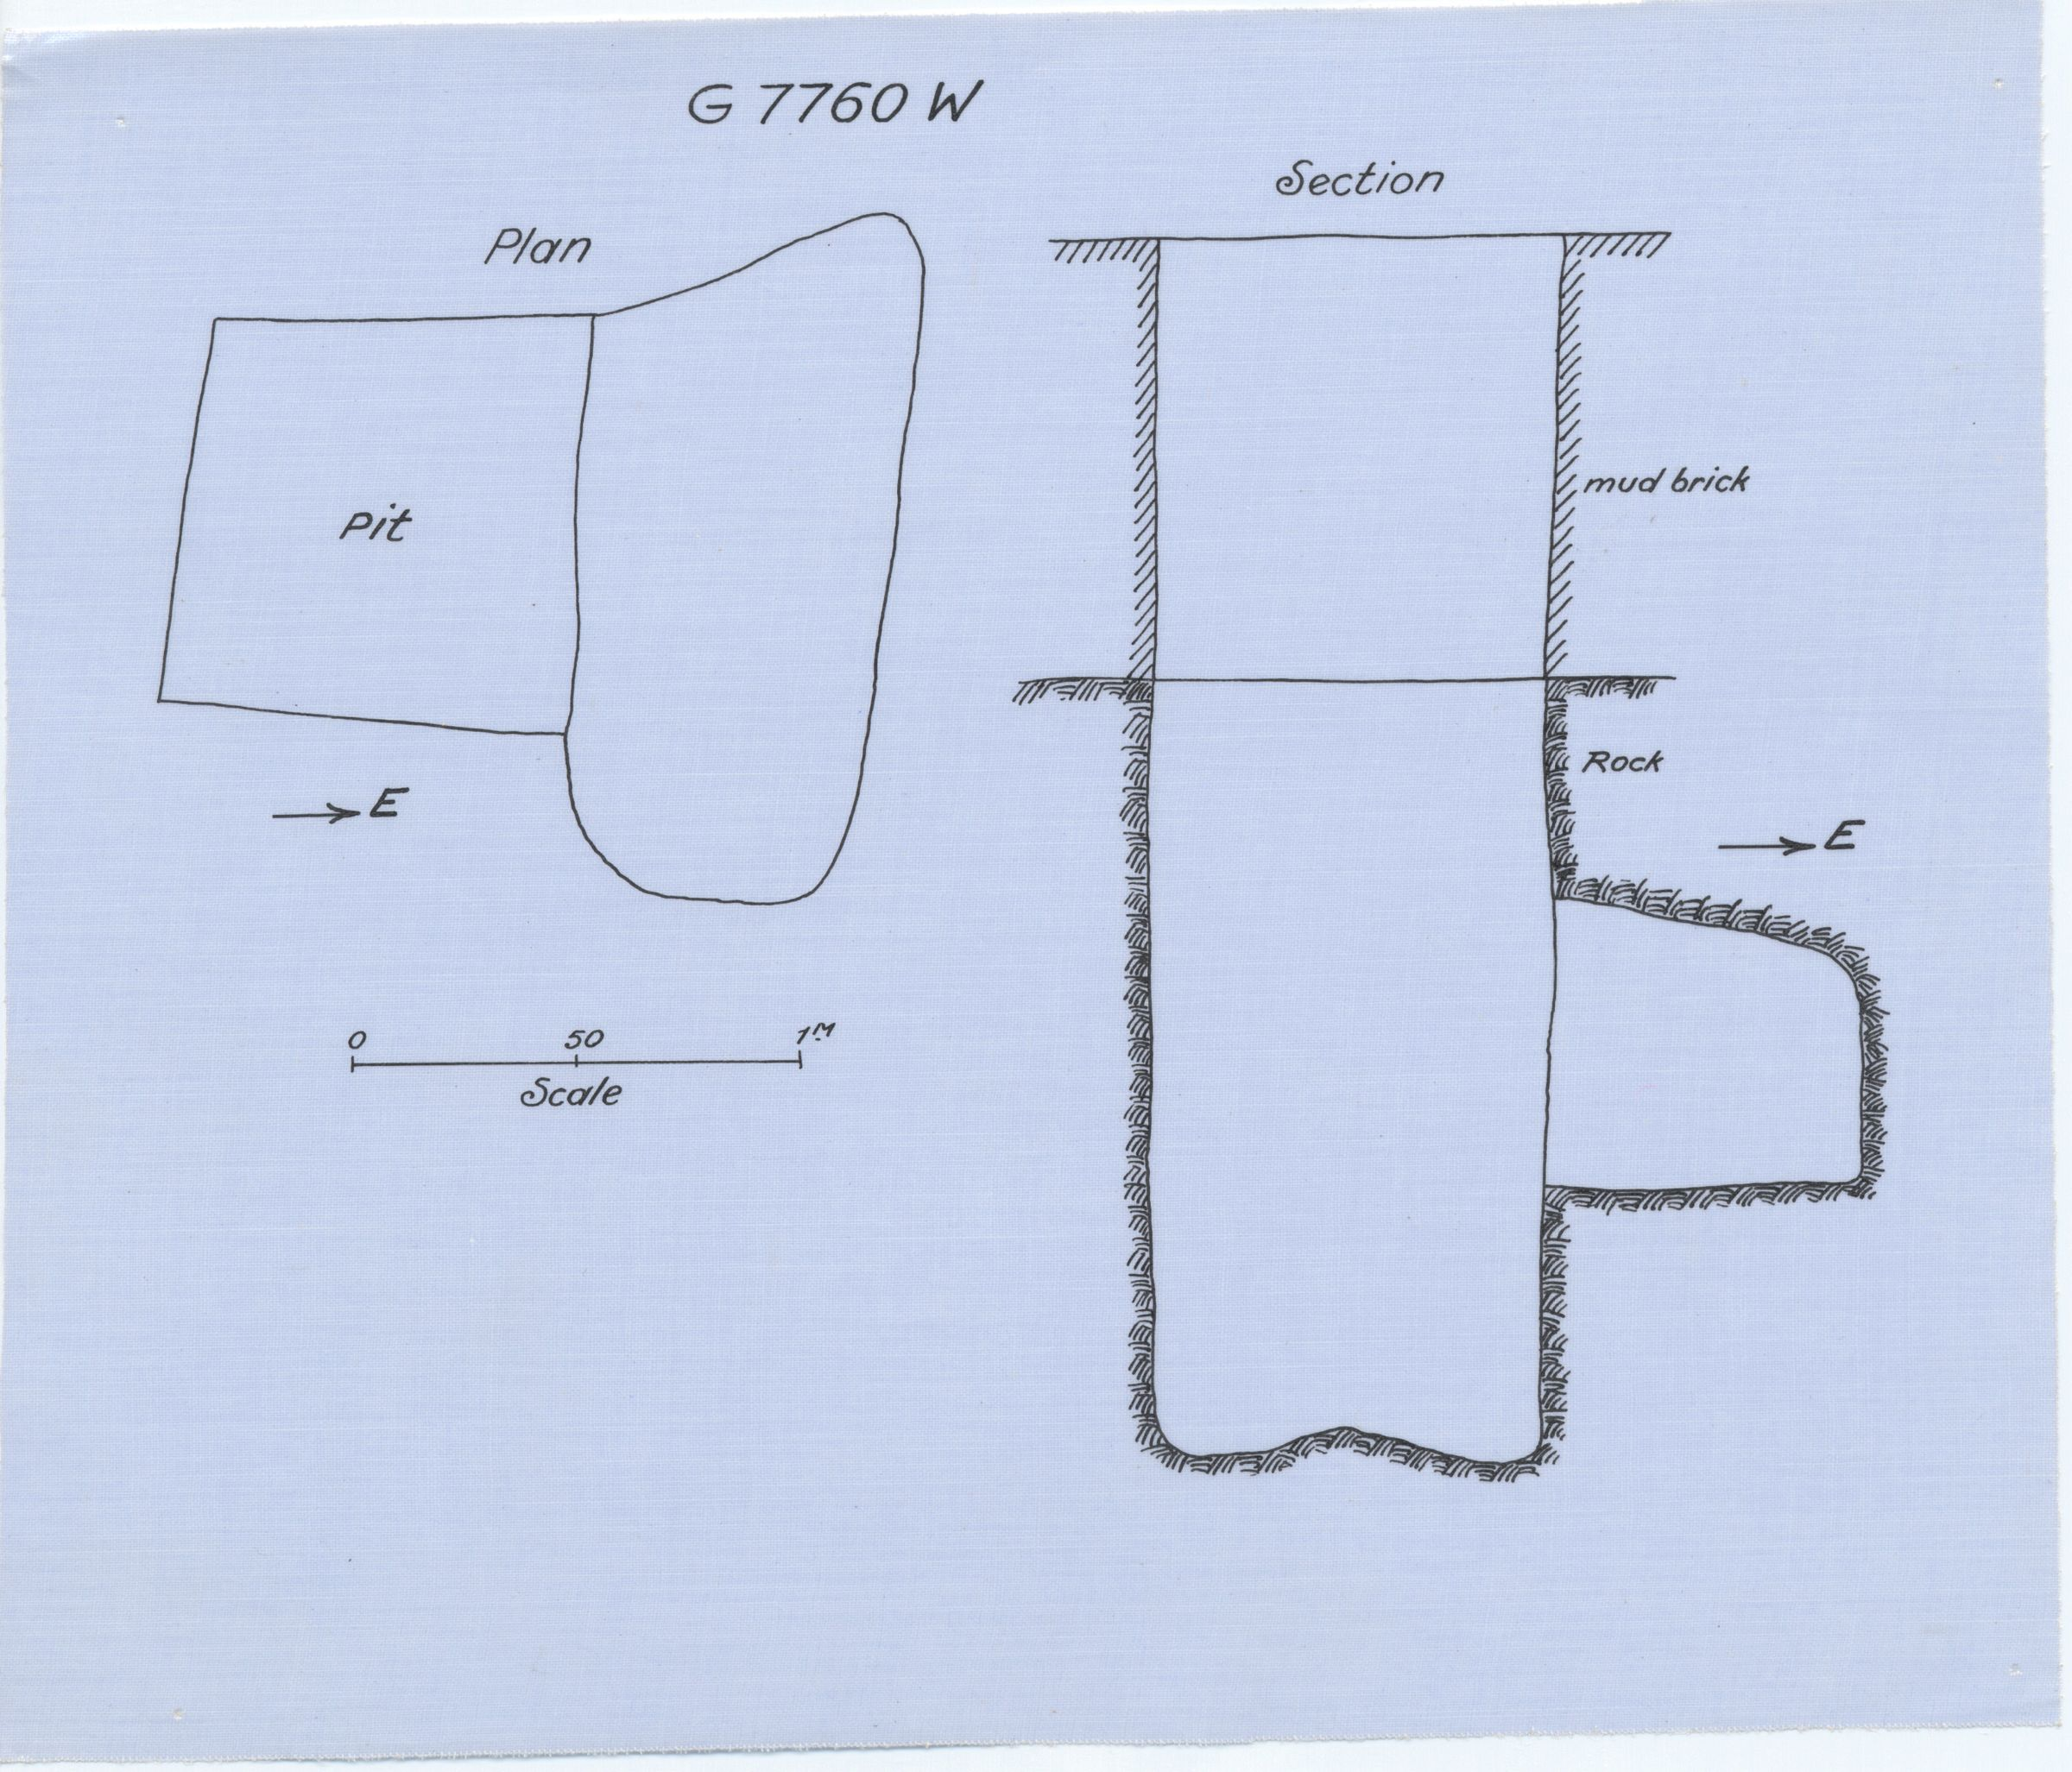 Maps and plans: G 7760, Shaft W